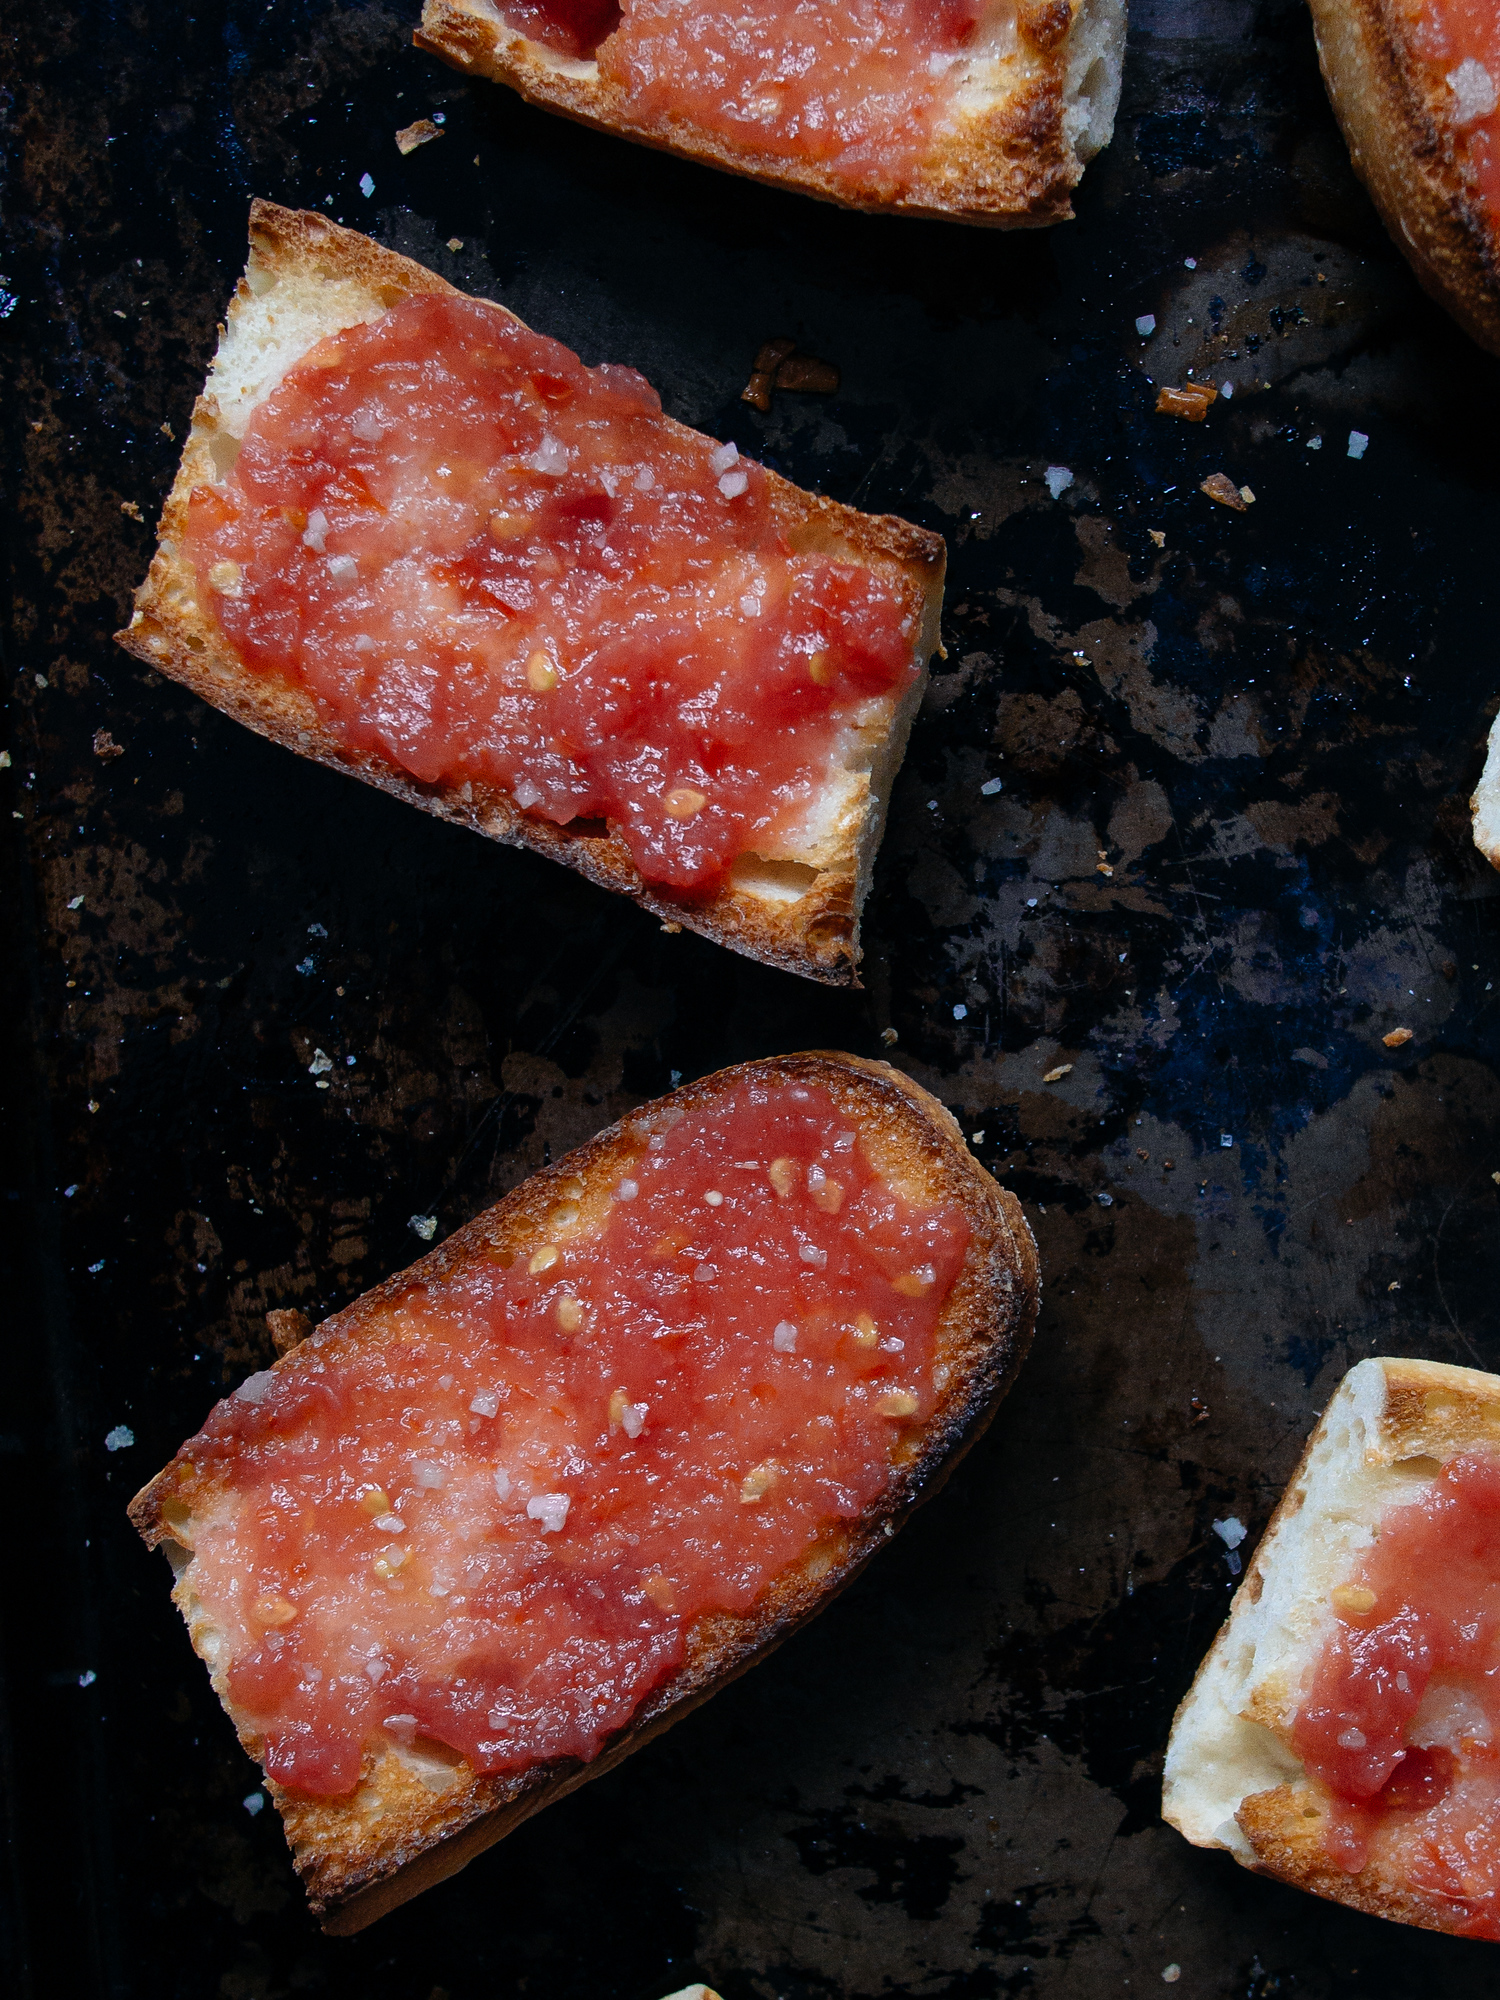 Pa amb tomaquet is Catalan tomato bread often called pan con tomate. Here's the authentic recipe with a few ways to make it easier to make.